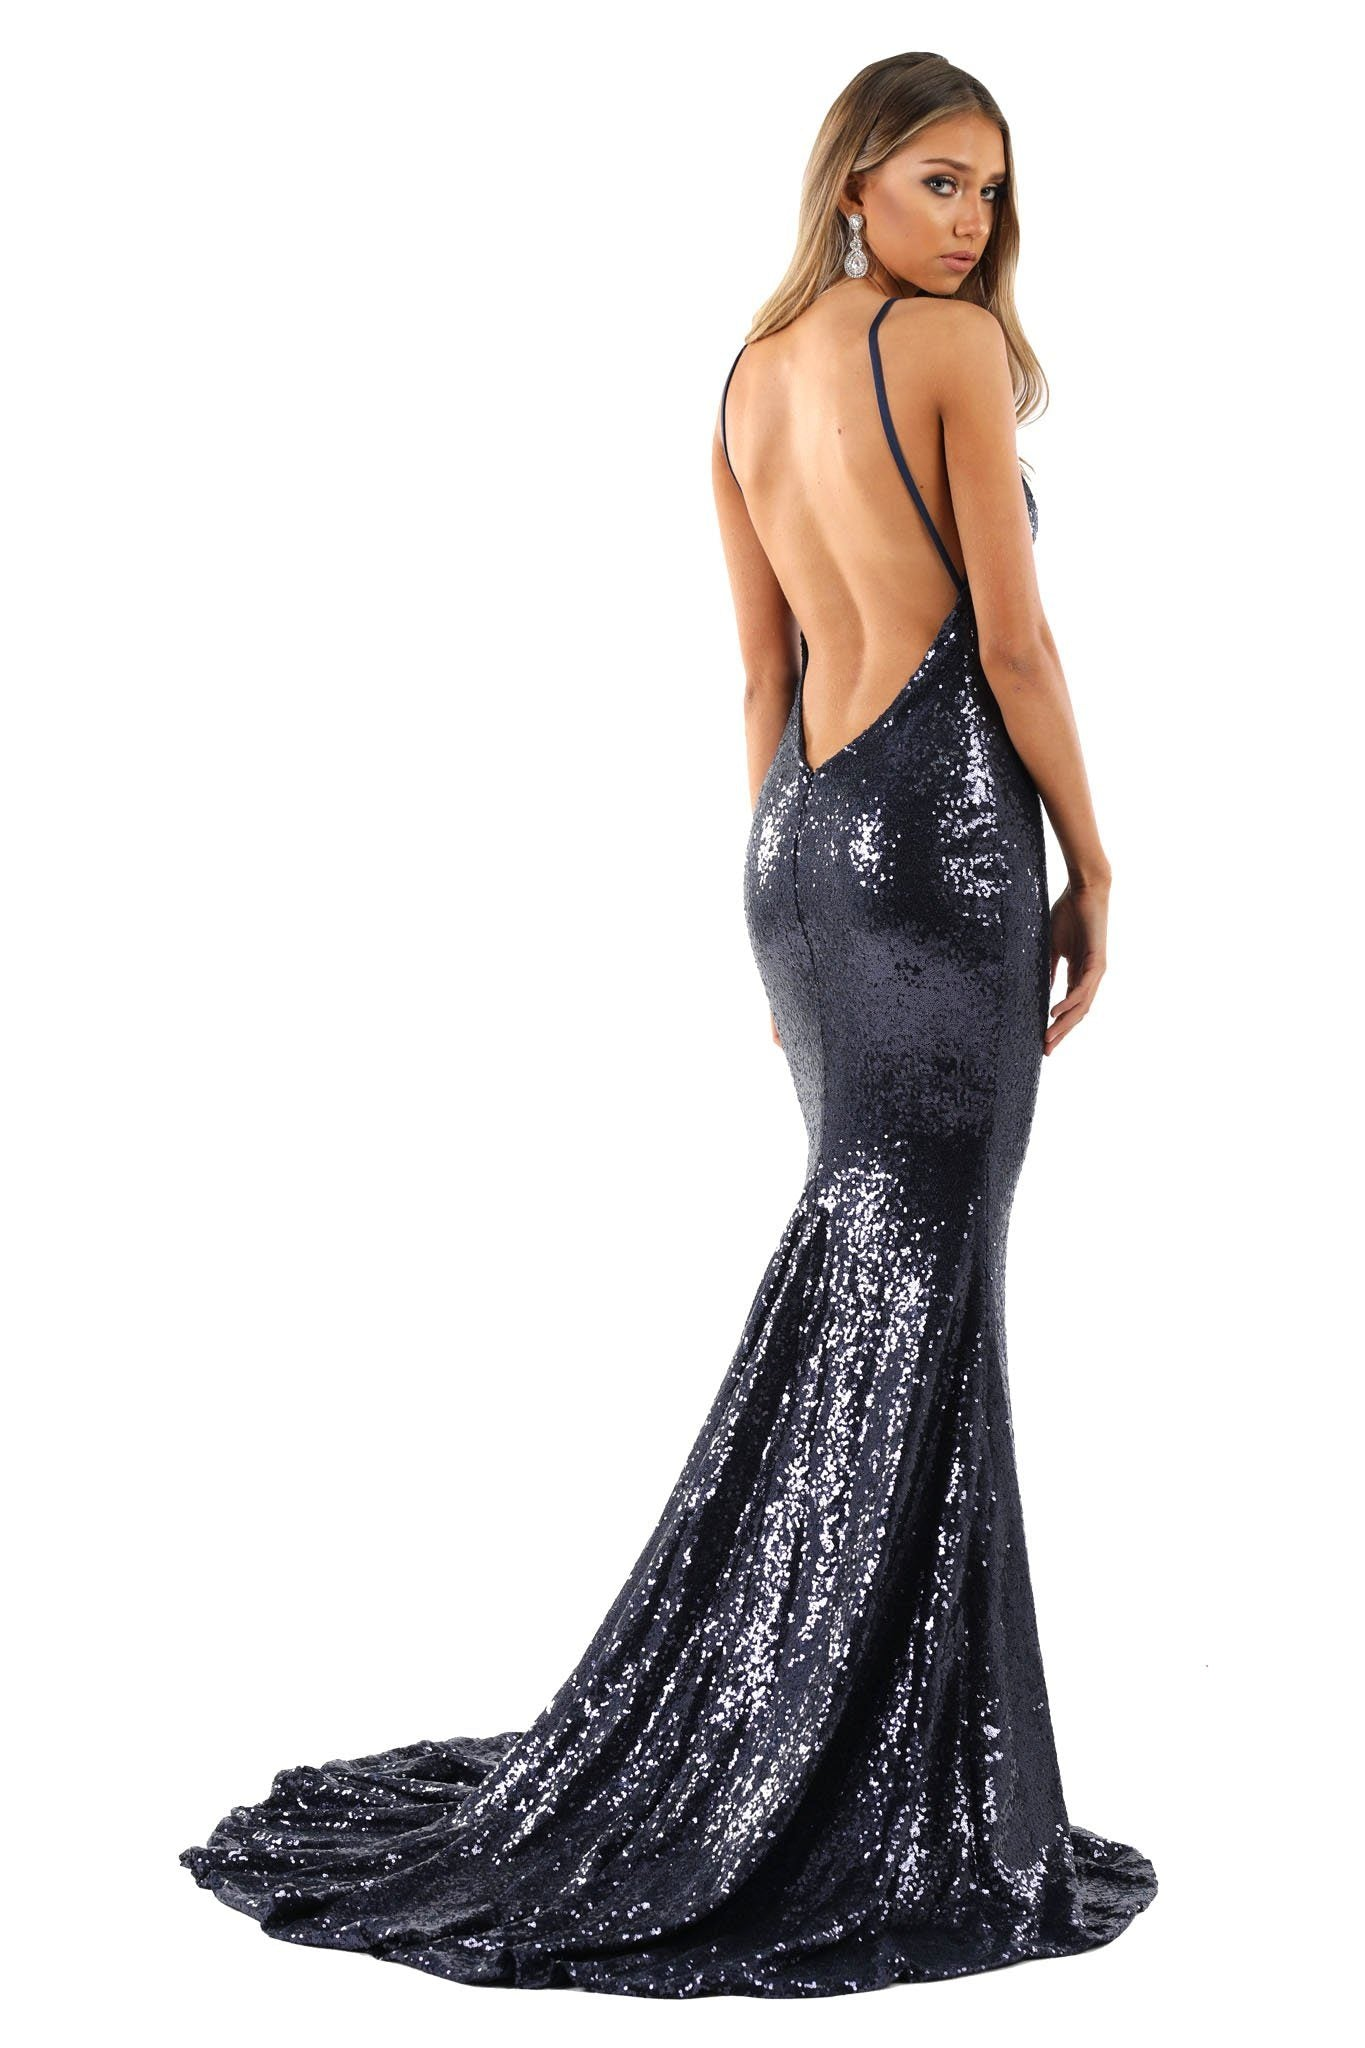 Navy Dark Blue Sequin Formal Prom Sleeveless Gown featuring Deep V Neck, V Shaped Backless Design, Thin Shoulder Straps, and Long Train